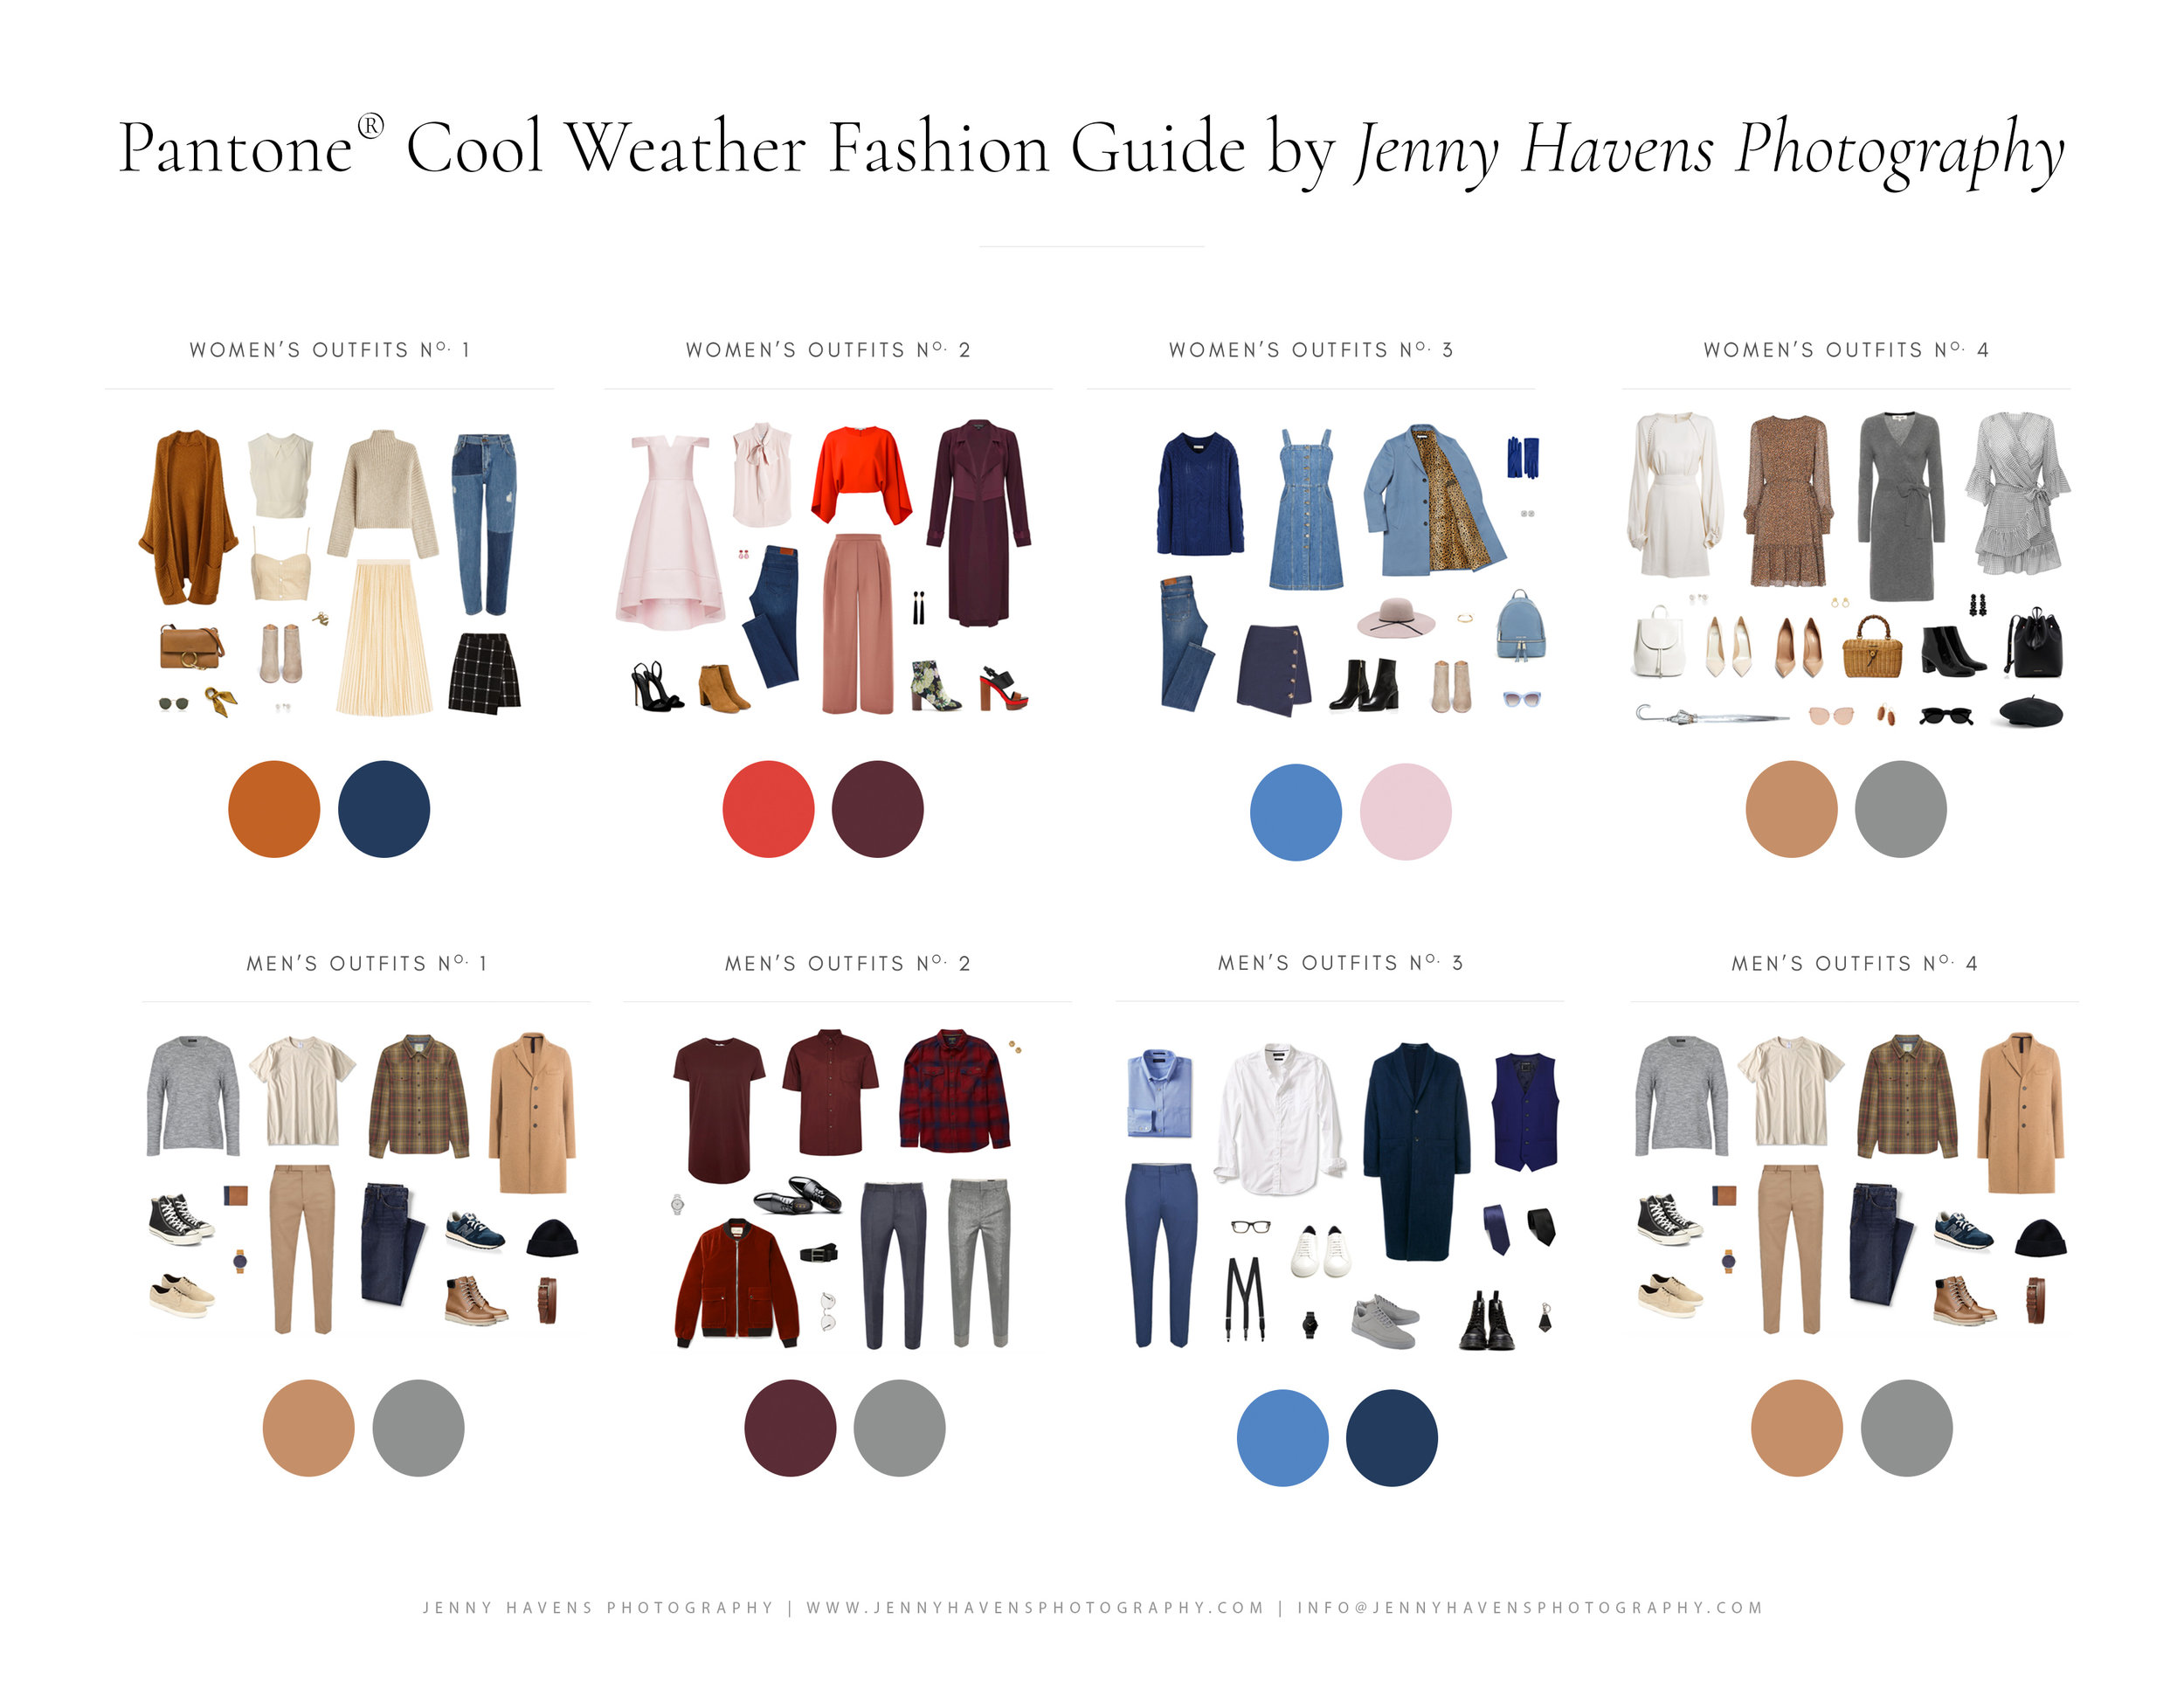 All_Outfits_Together_For_Print_or_PDF.jpg